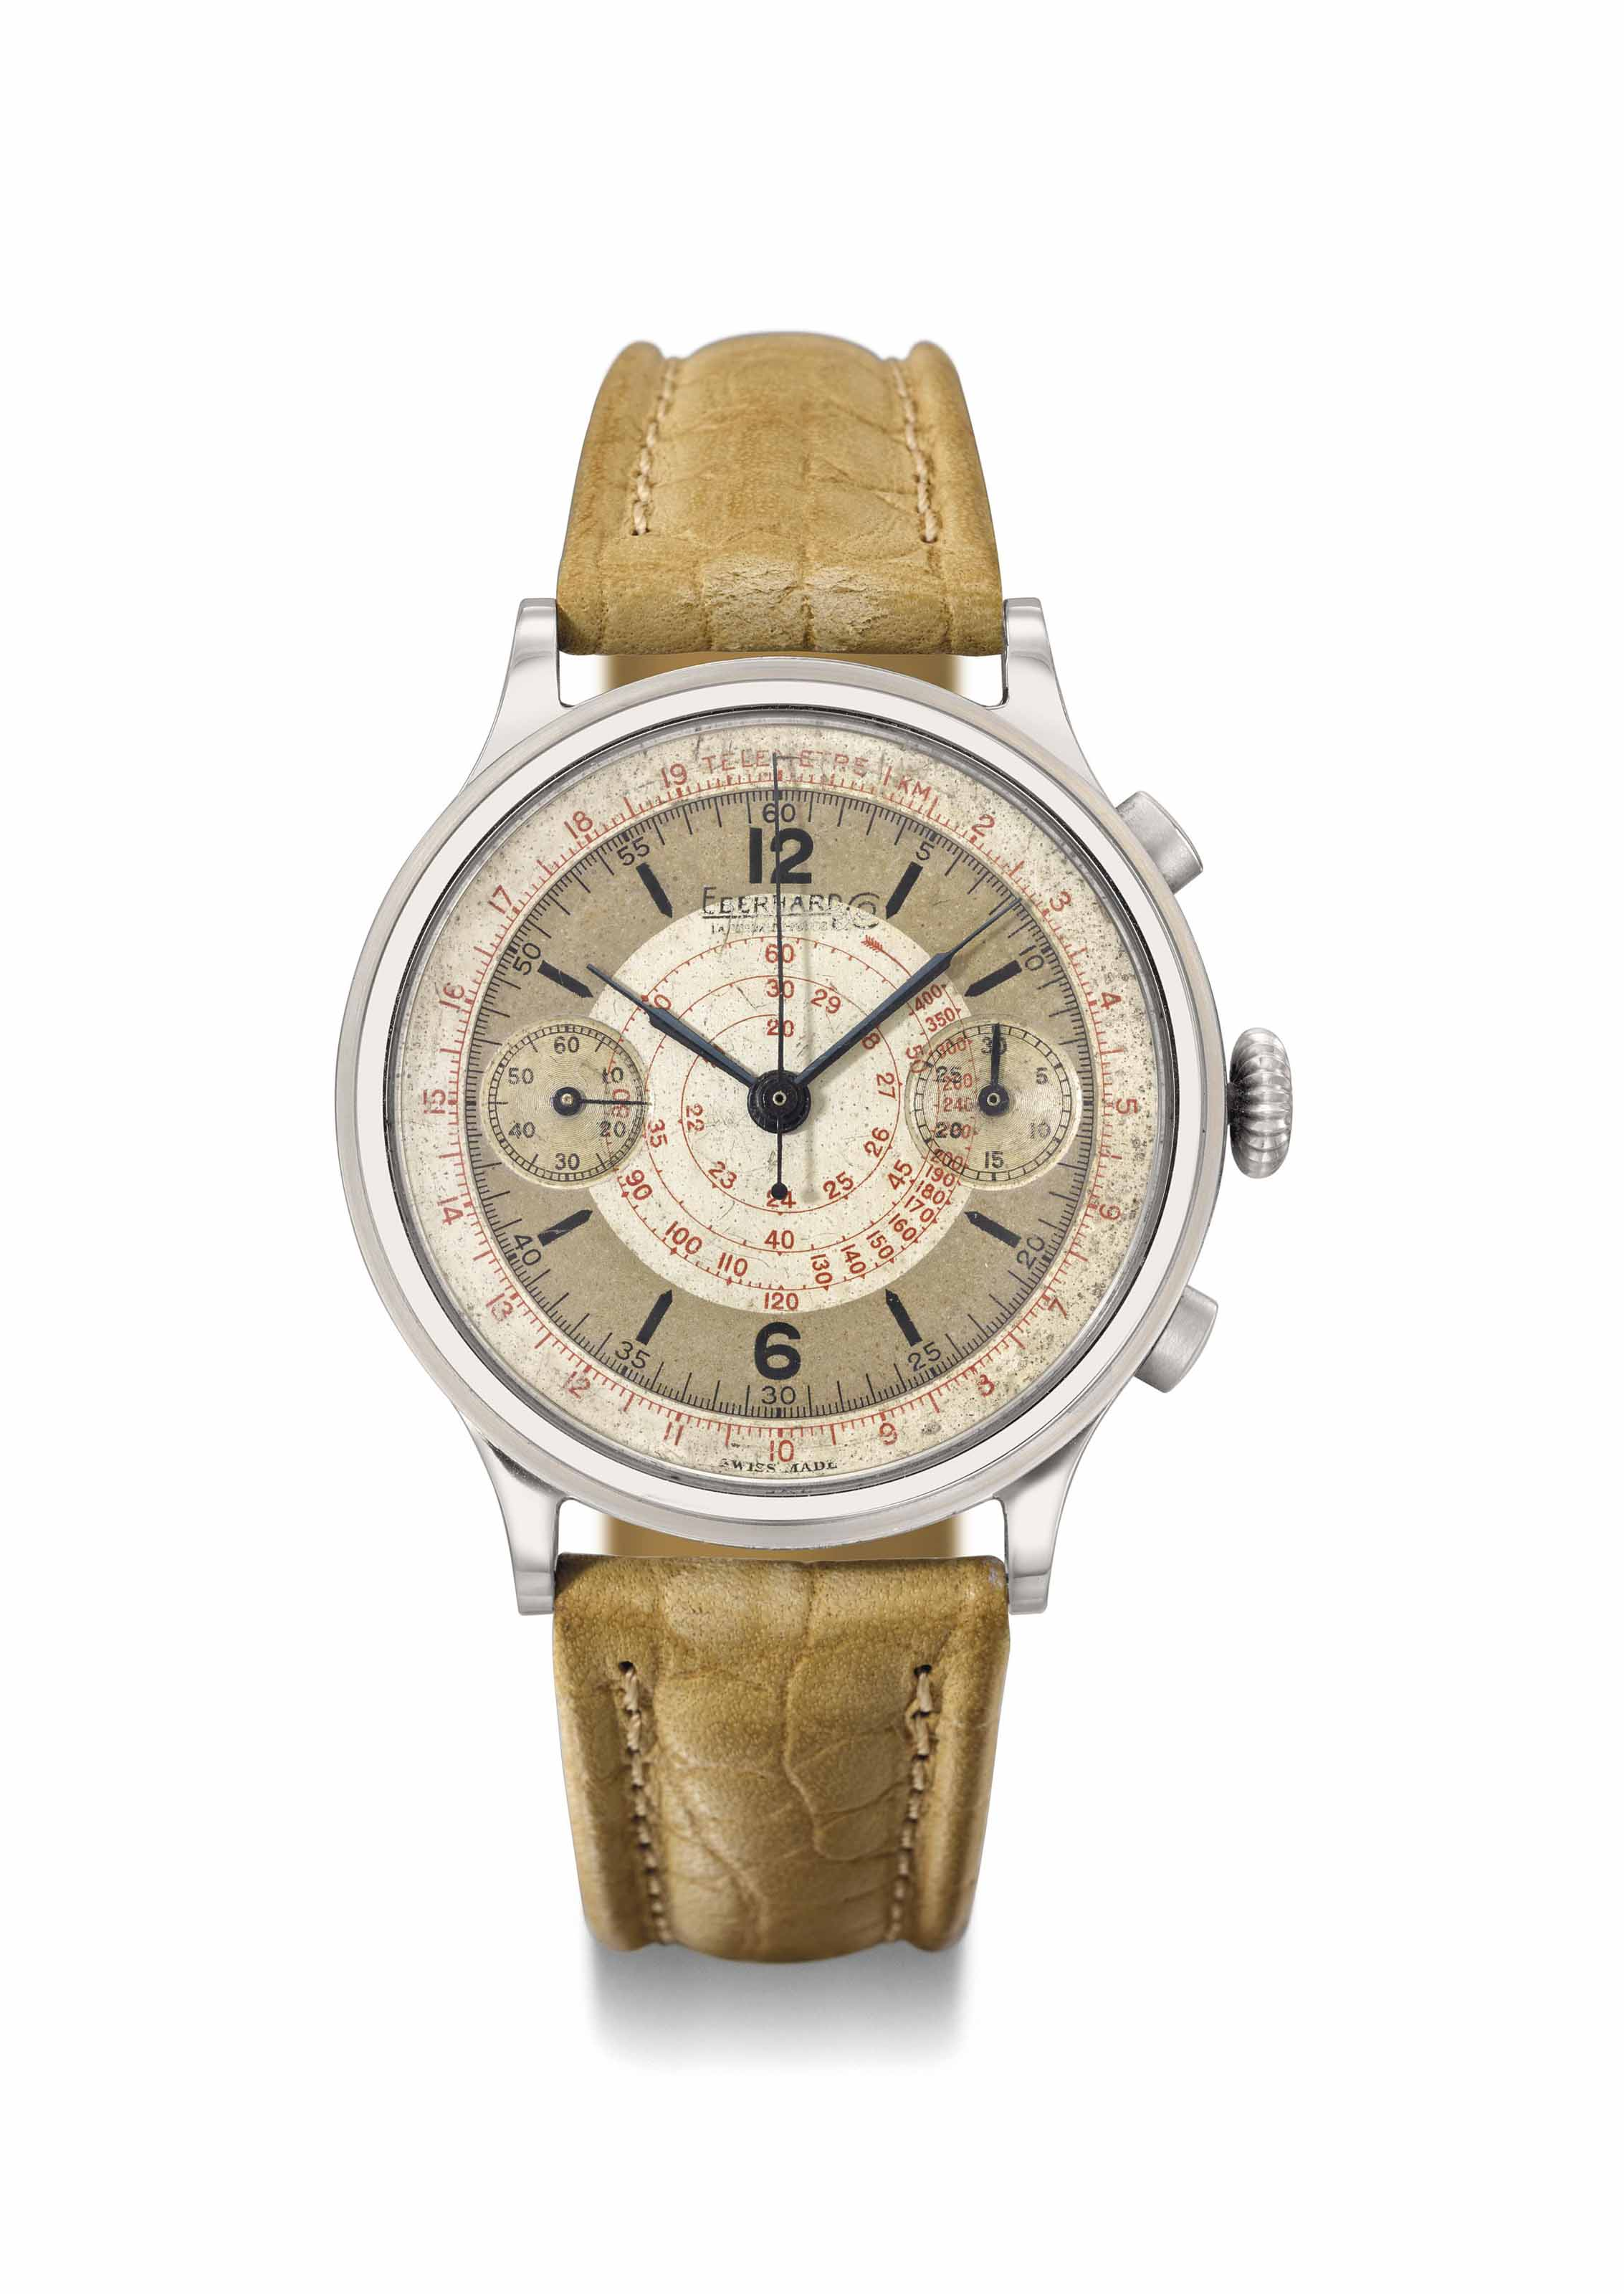 Eberhard. A large and unusual stainless steel chronograph wristwatch with two-tone silvered dial and patented split time mechanism